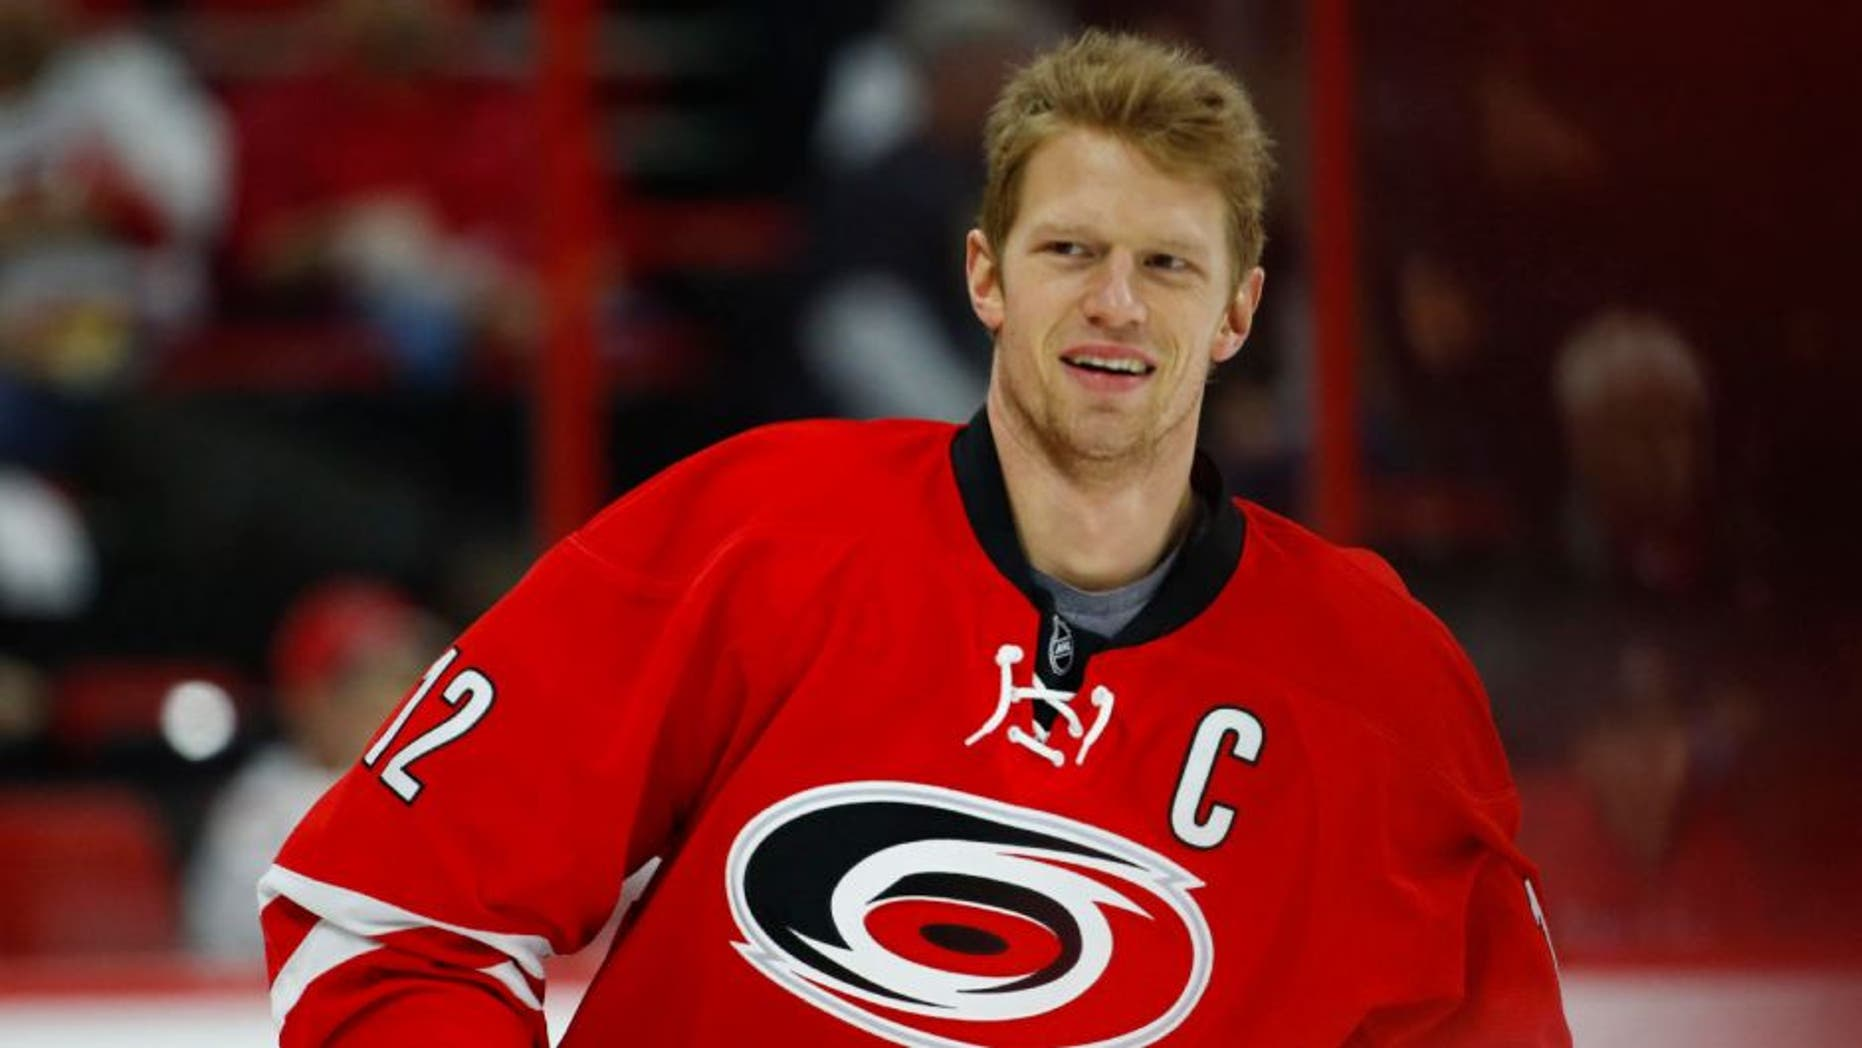 Carolina Hurricanes forward Eric Staal smiles prior to the game against the Boston Bruins.